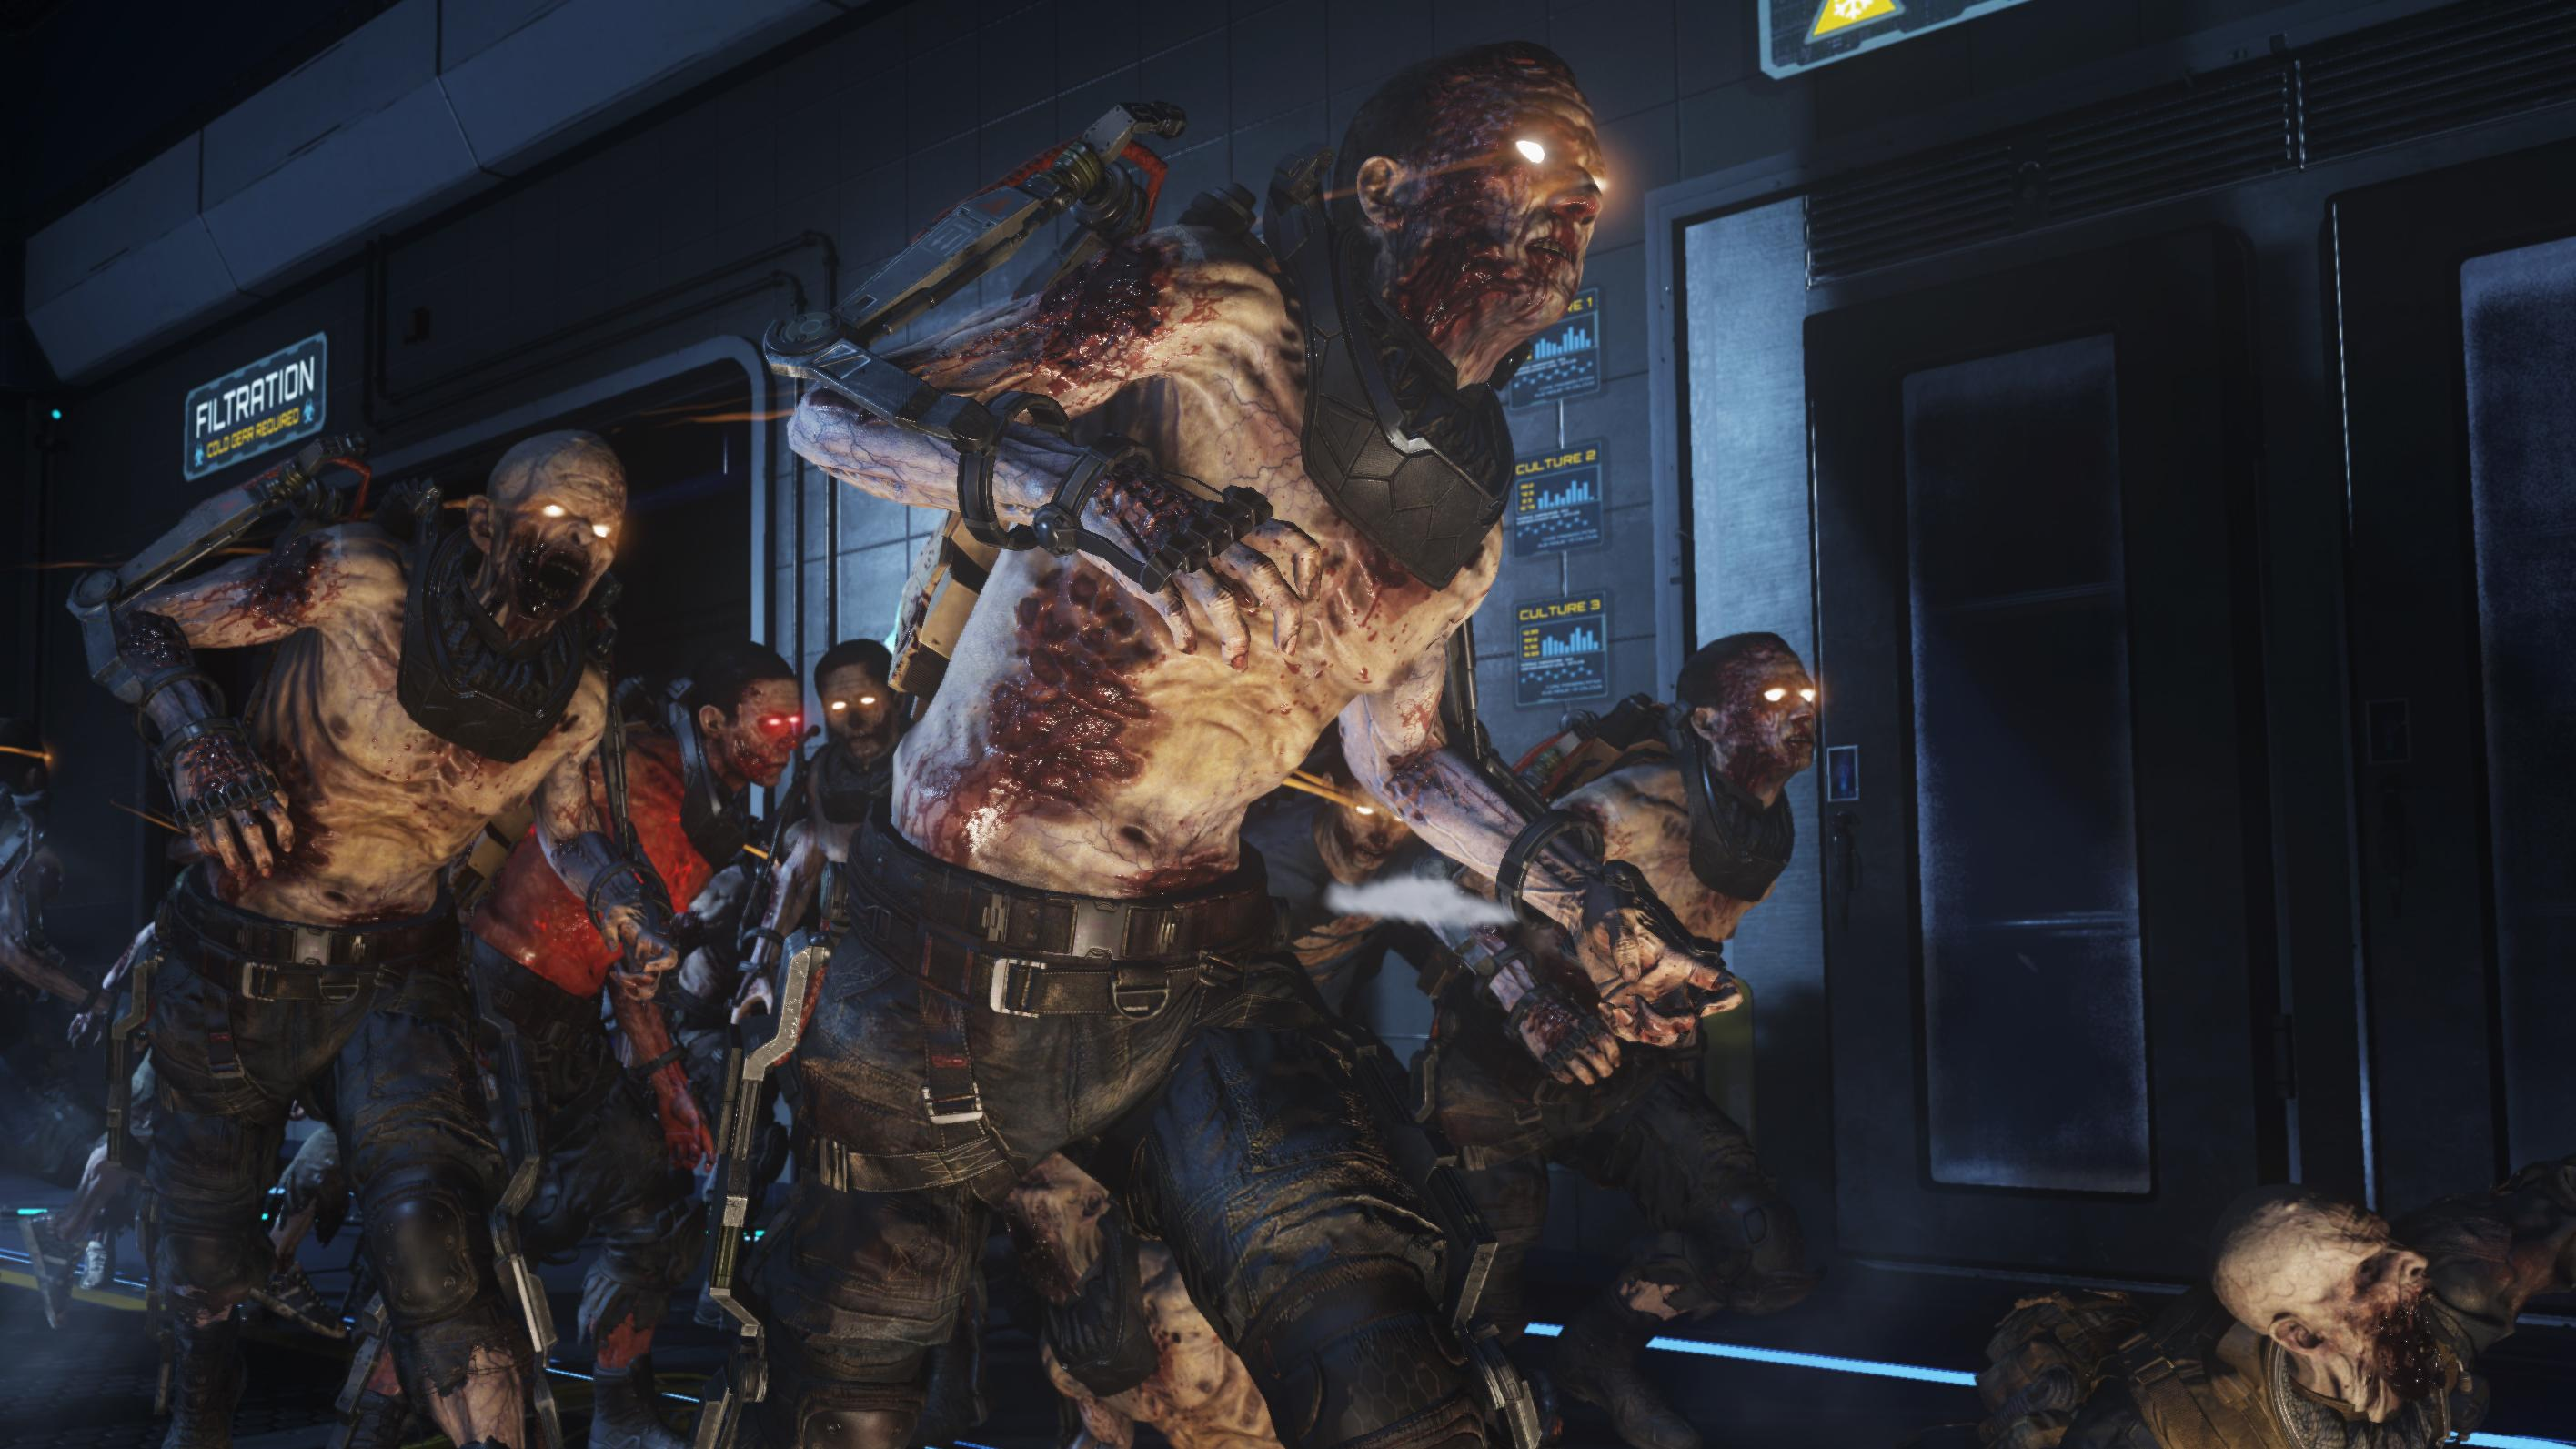 PS4, PS3, PC Get Call of Duty: Advanced Warfare's First DLC Today